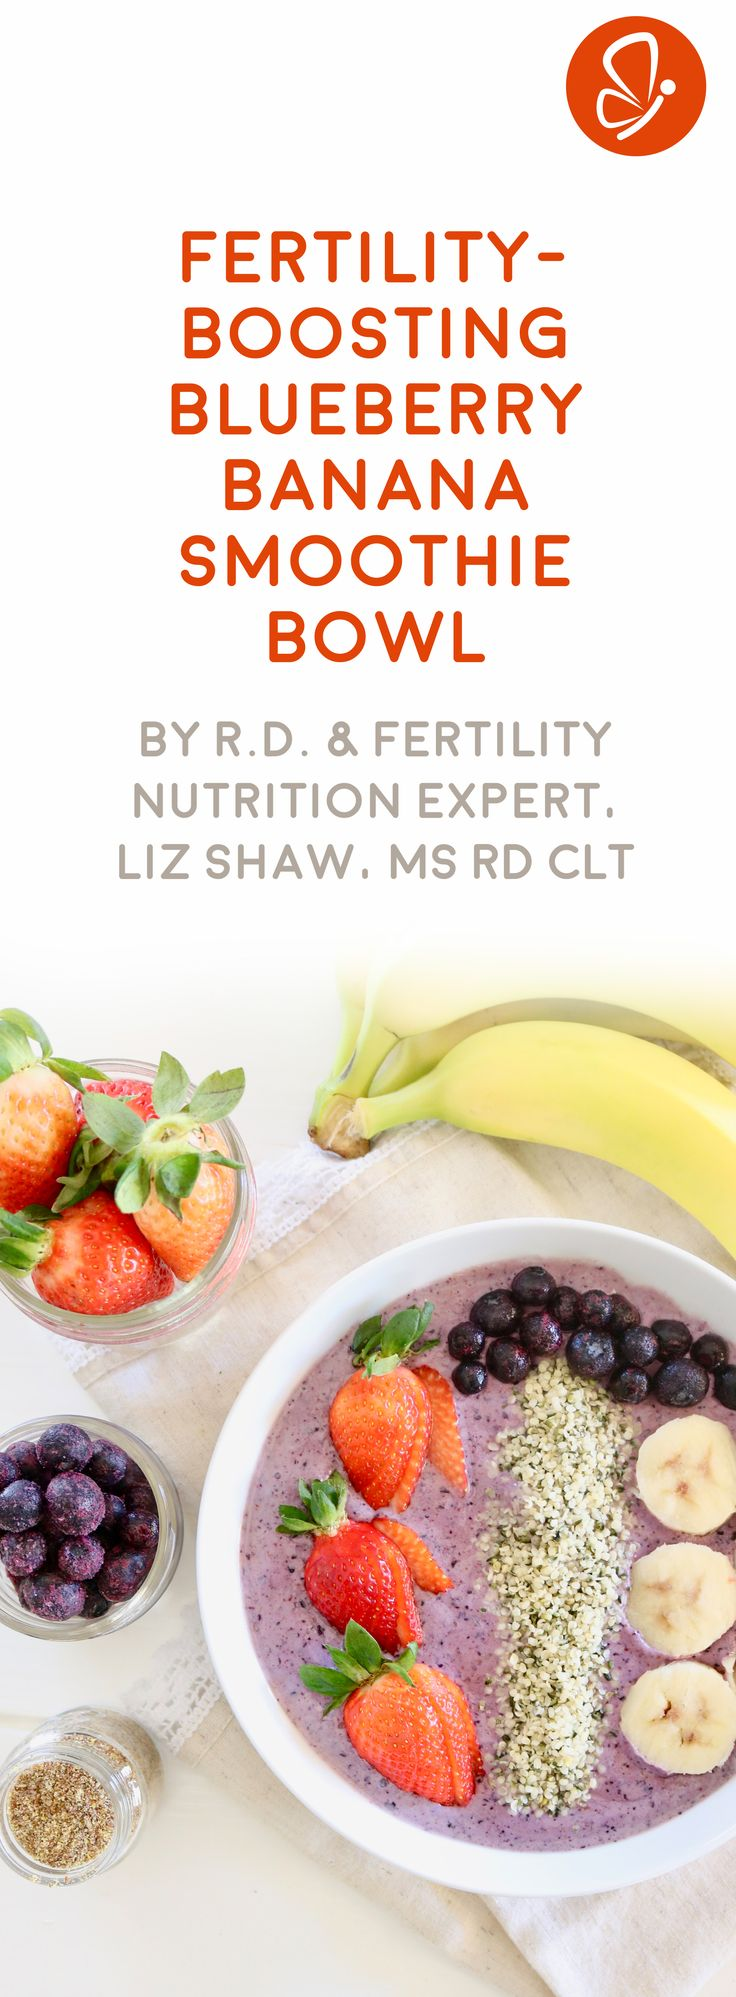 Boost your fertility naturally with this delicious Blueberry Banana smoothie bowl recipe  – from Liz Shaw of @bumps2baby. Click to view recipe!